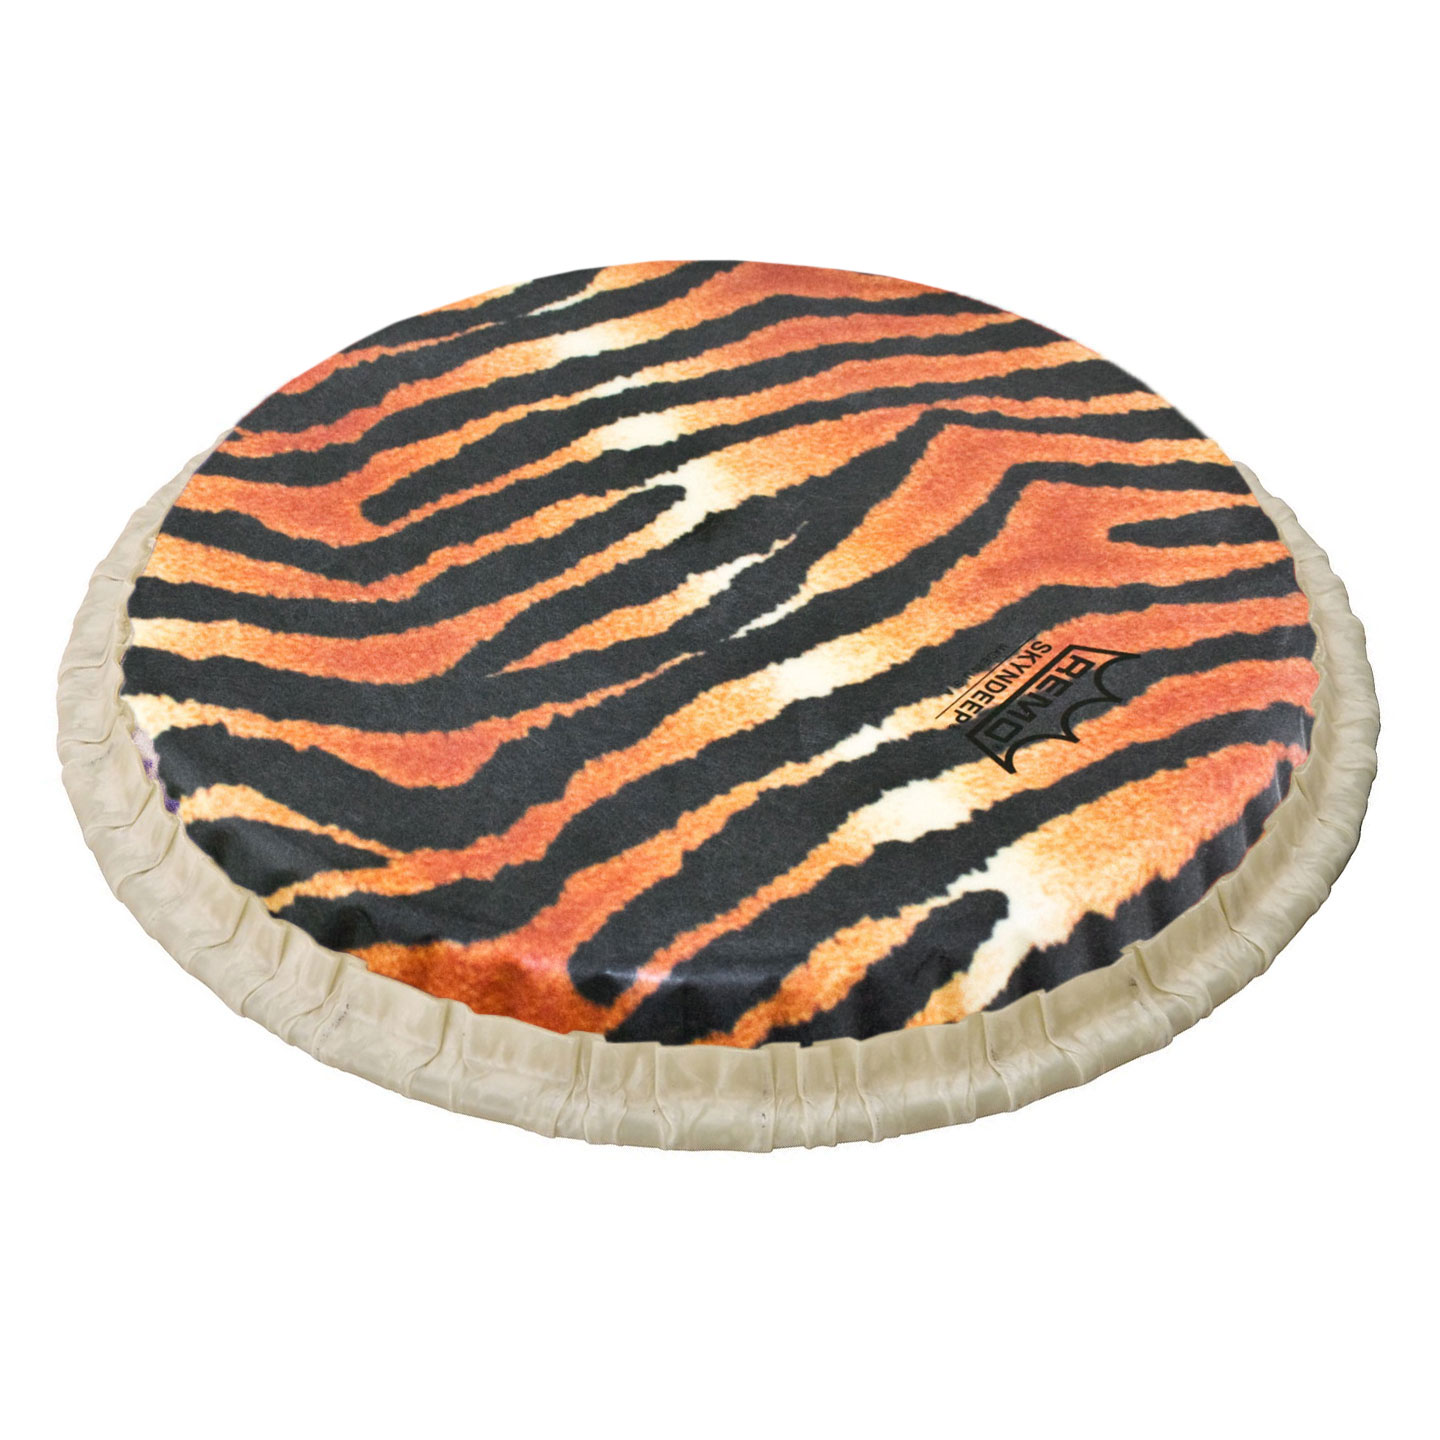 "Remo 13"" Tucked Skyndeep Conga Drum Head with Tiger Stripe Graphic"